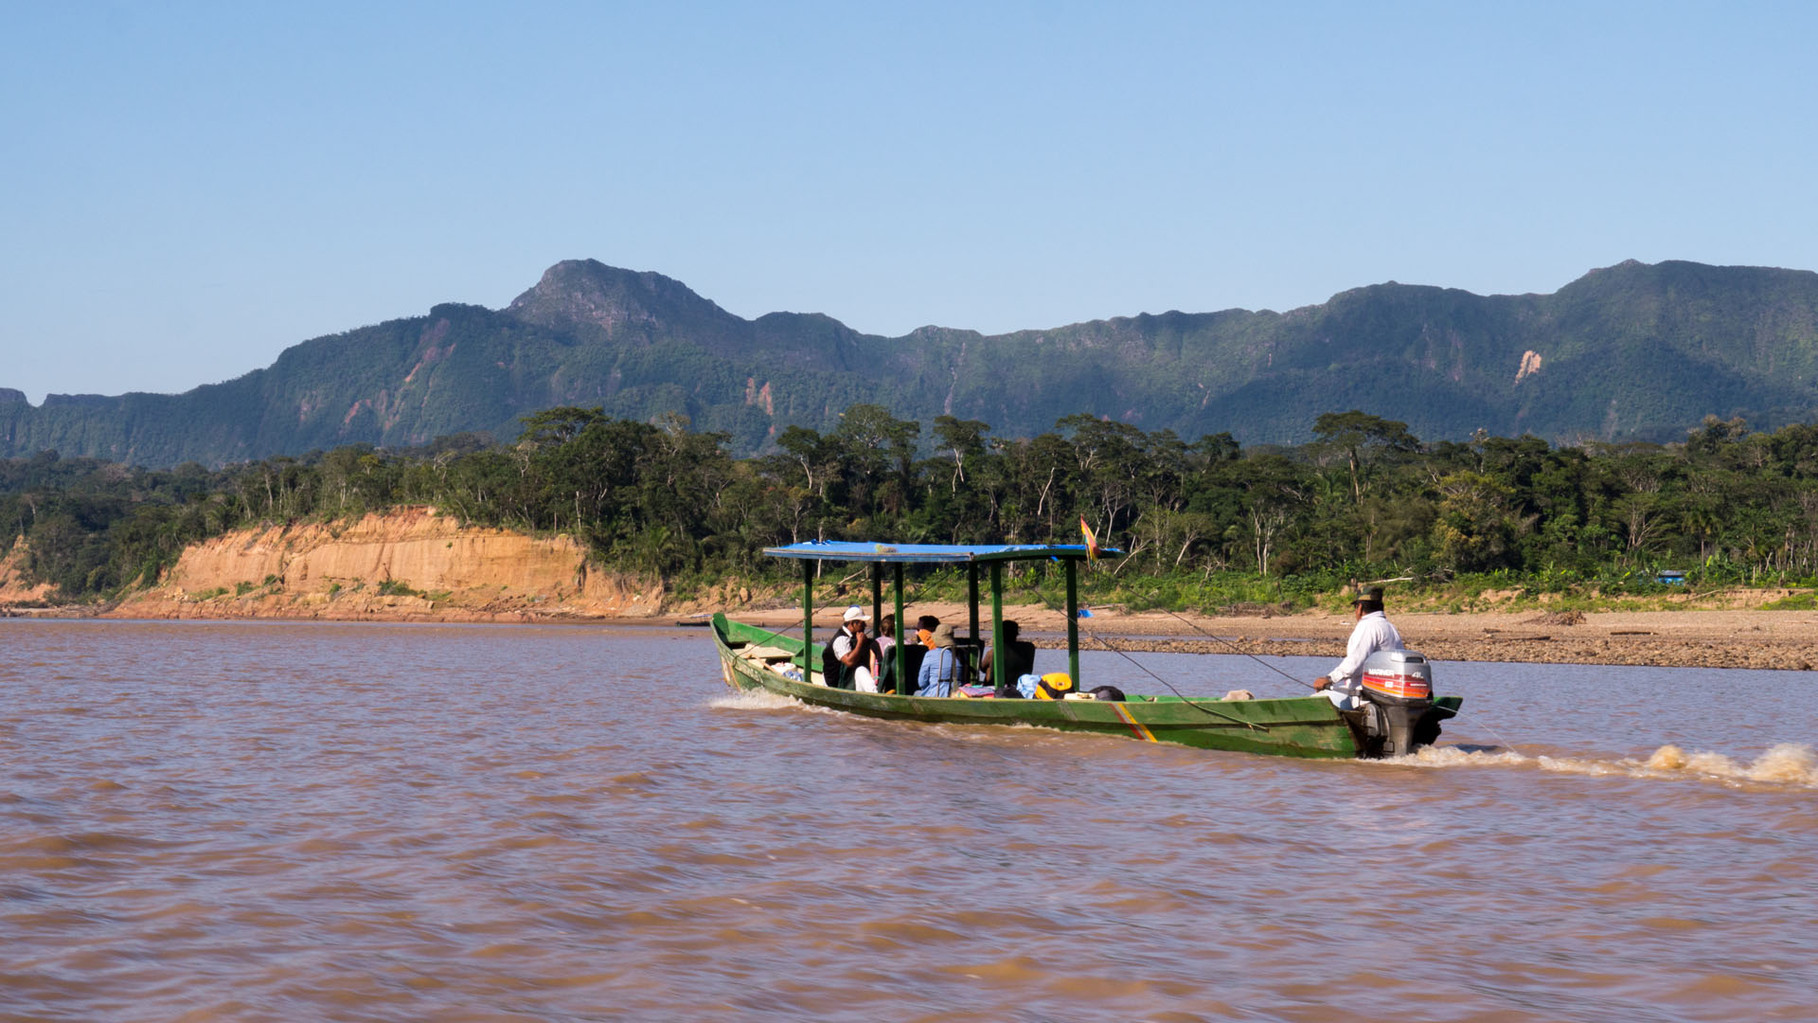 Amazon basin, Madidi Nationalpark (250 masl), Rio Beni/Rio Tuichi which ultimately flow into the Rio Amazonas